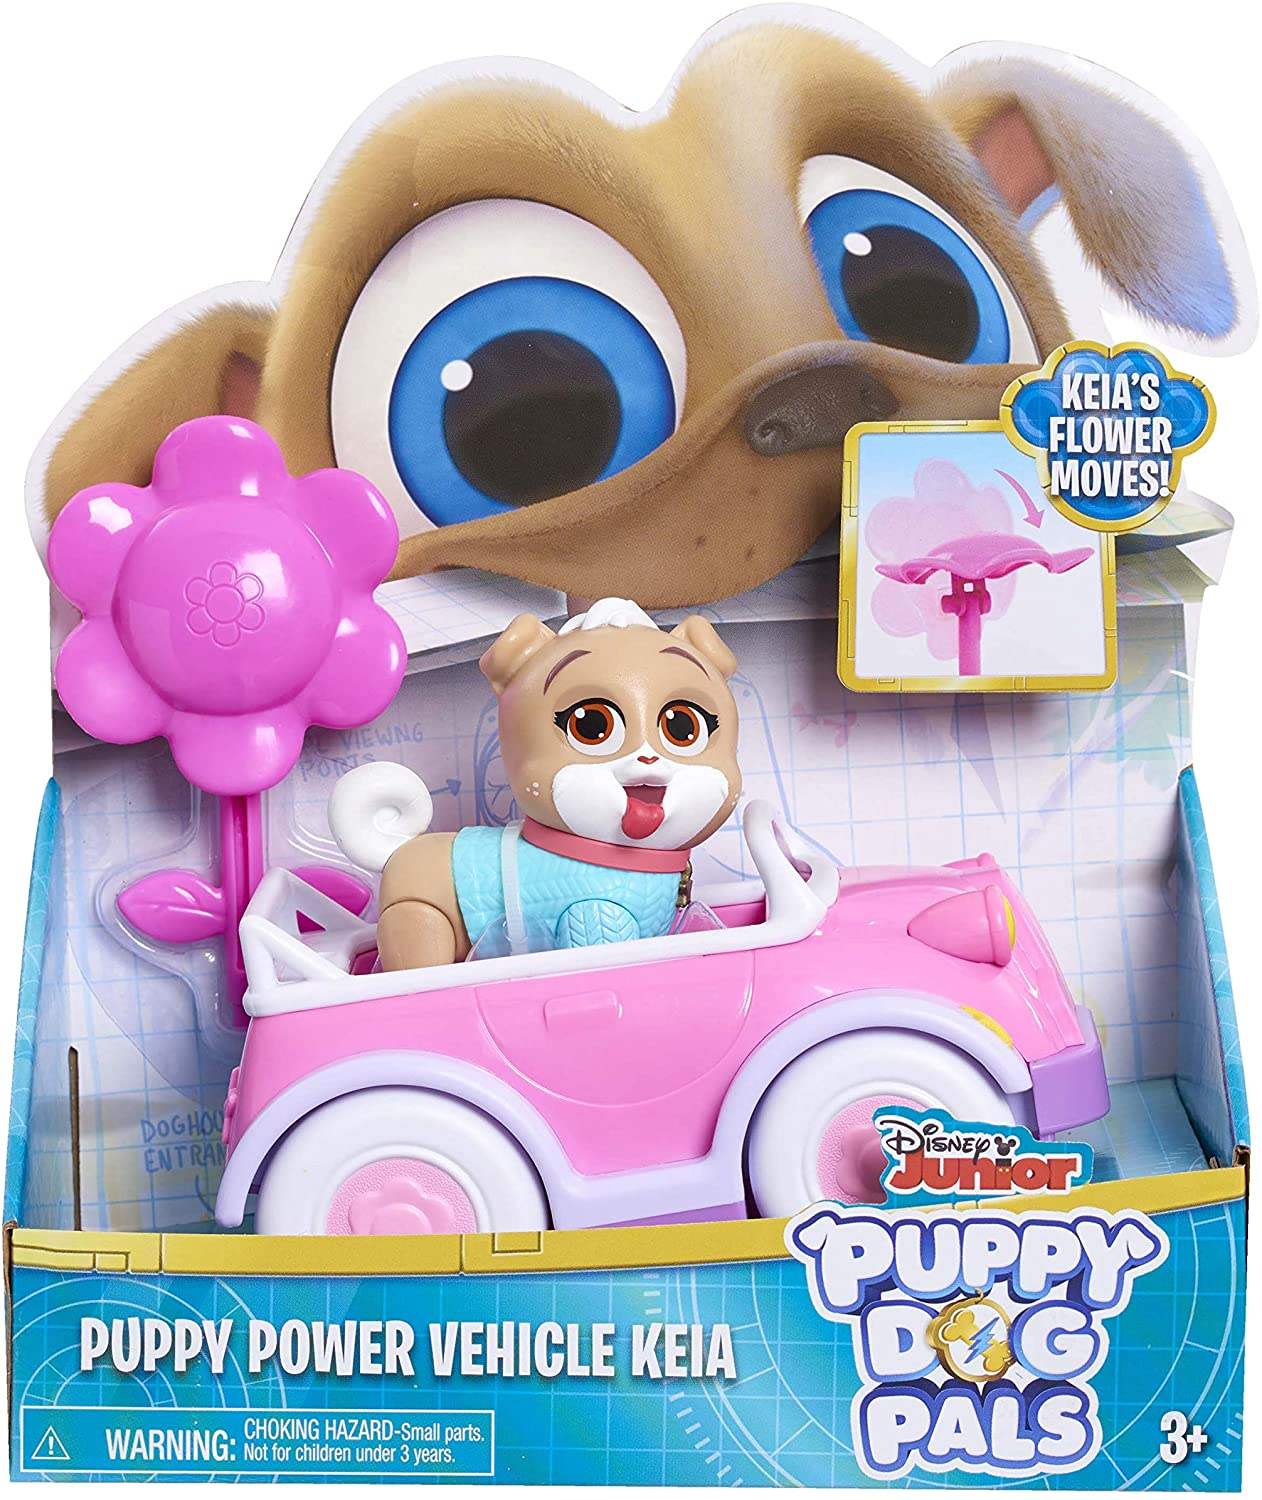 Disney Puppy Dog Pals Puppy Power Vehicle Keia